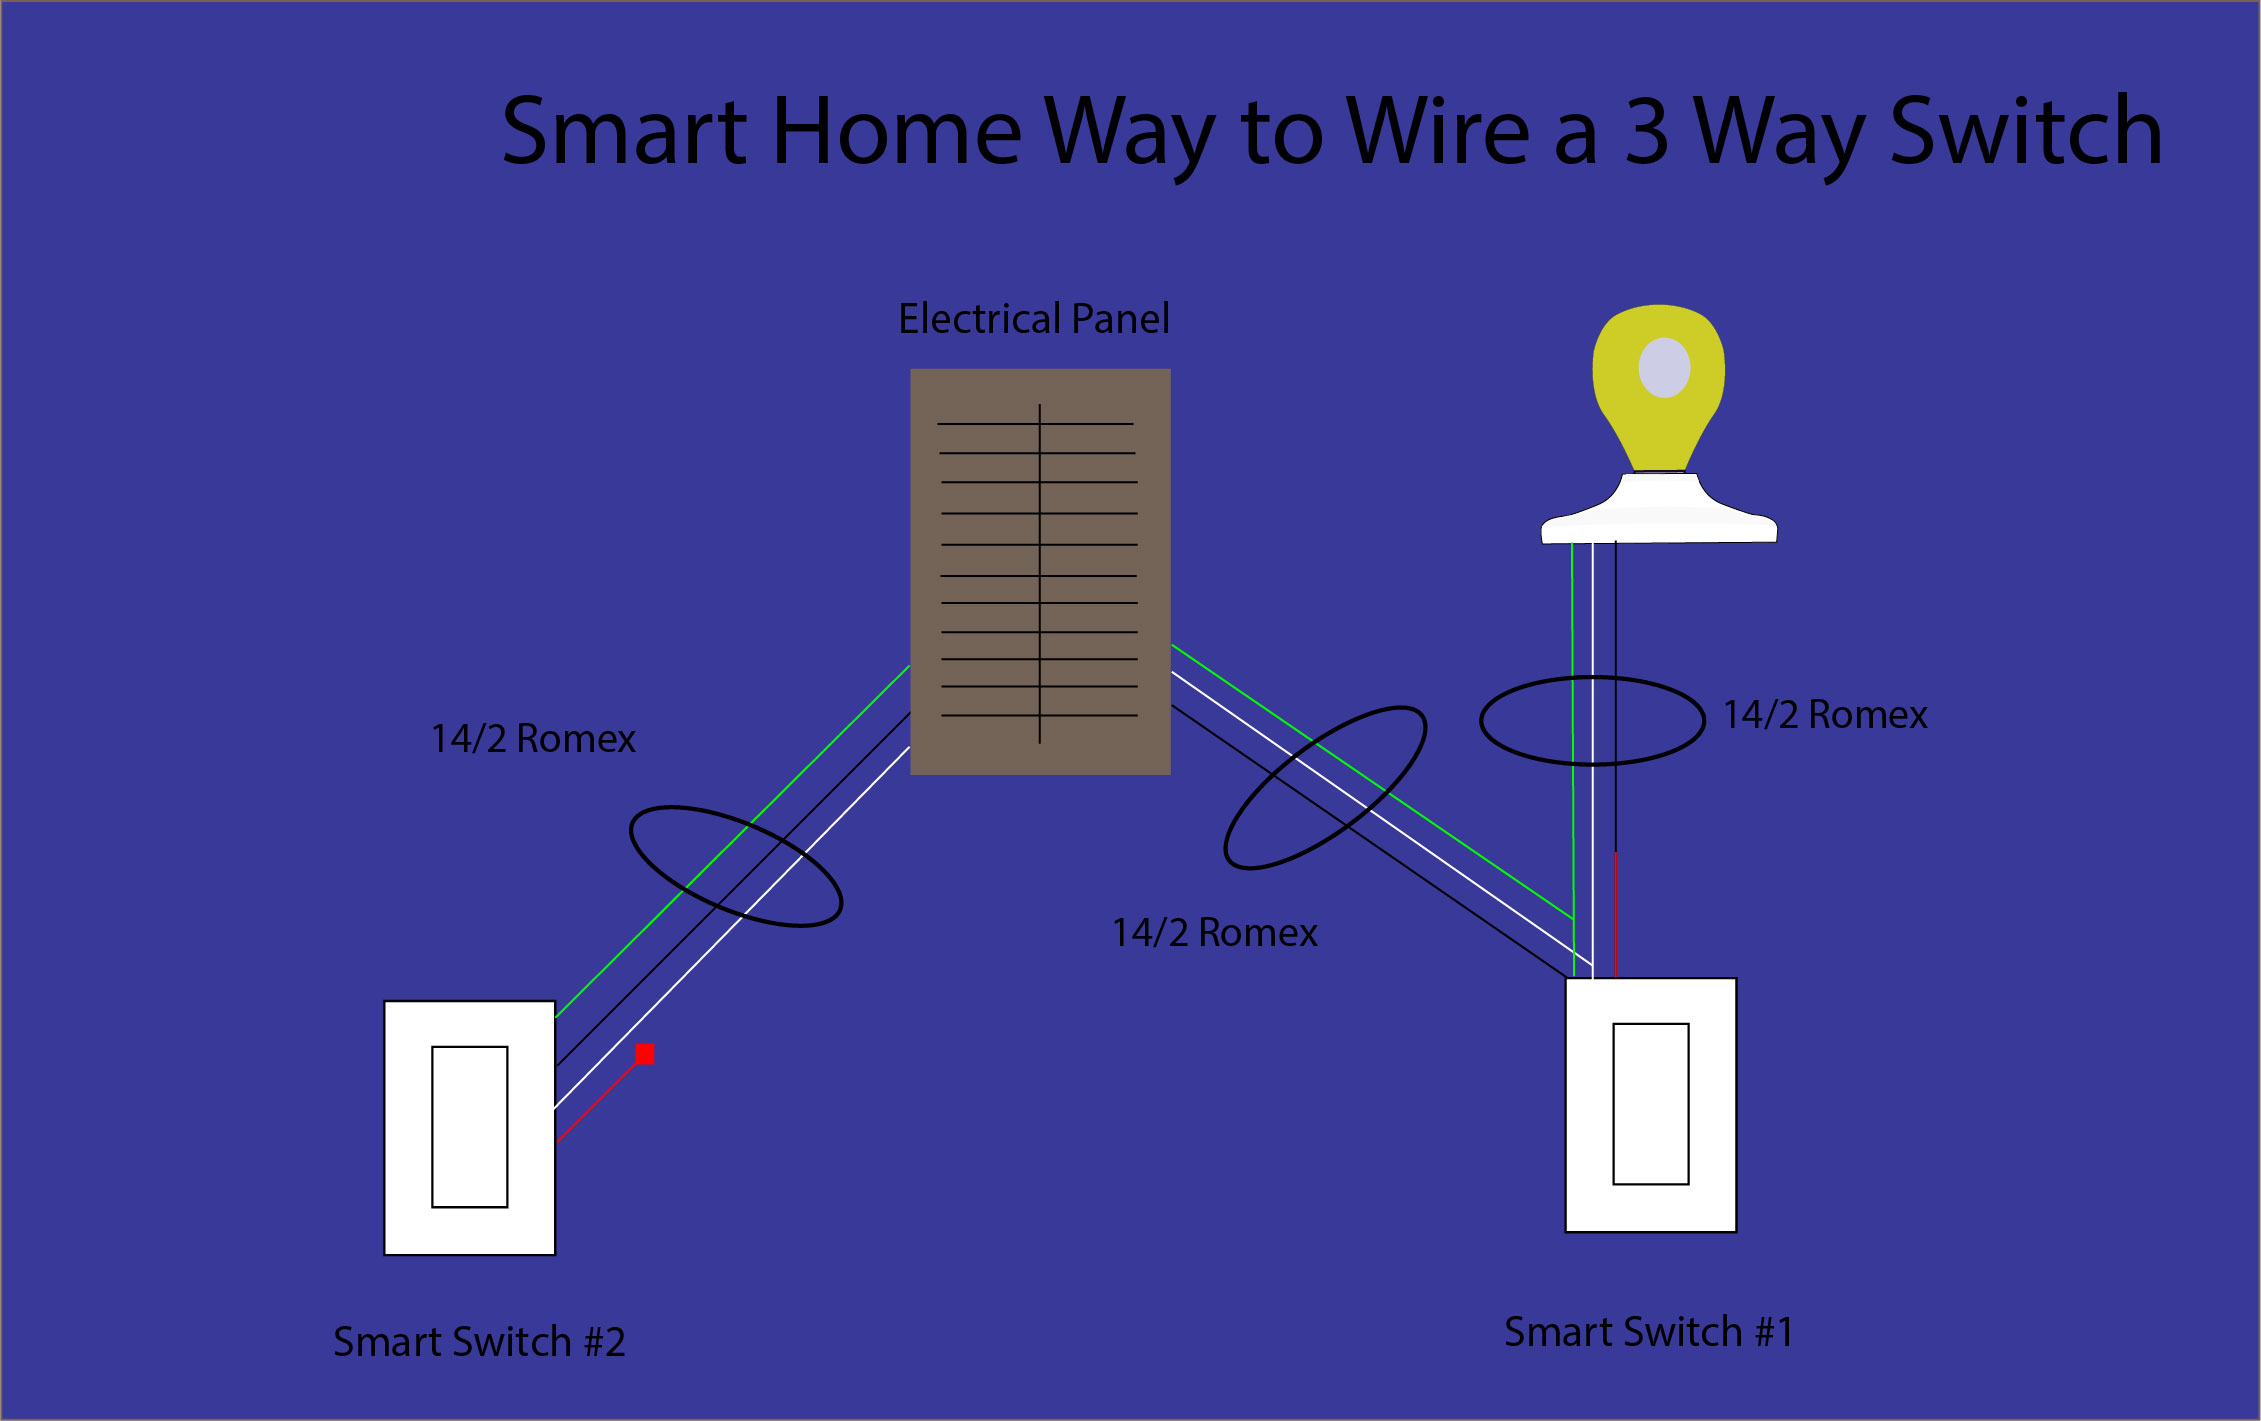 3 Way 4 Way Wiring Diagram from www.smarthomemastery.com